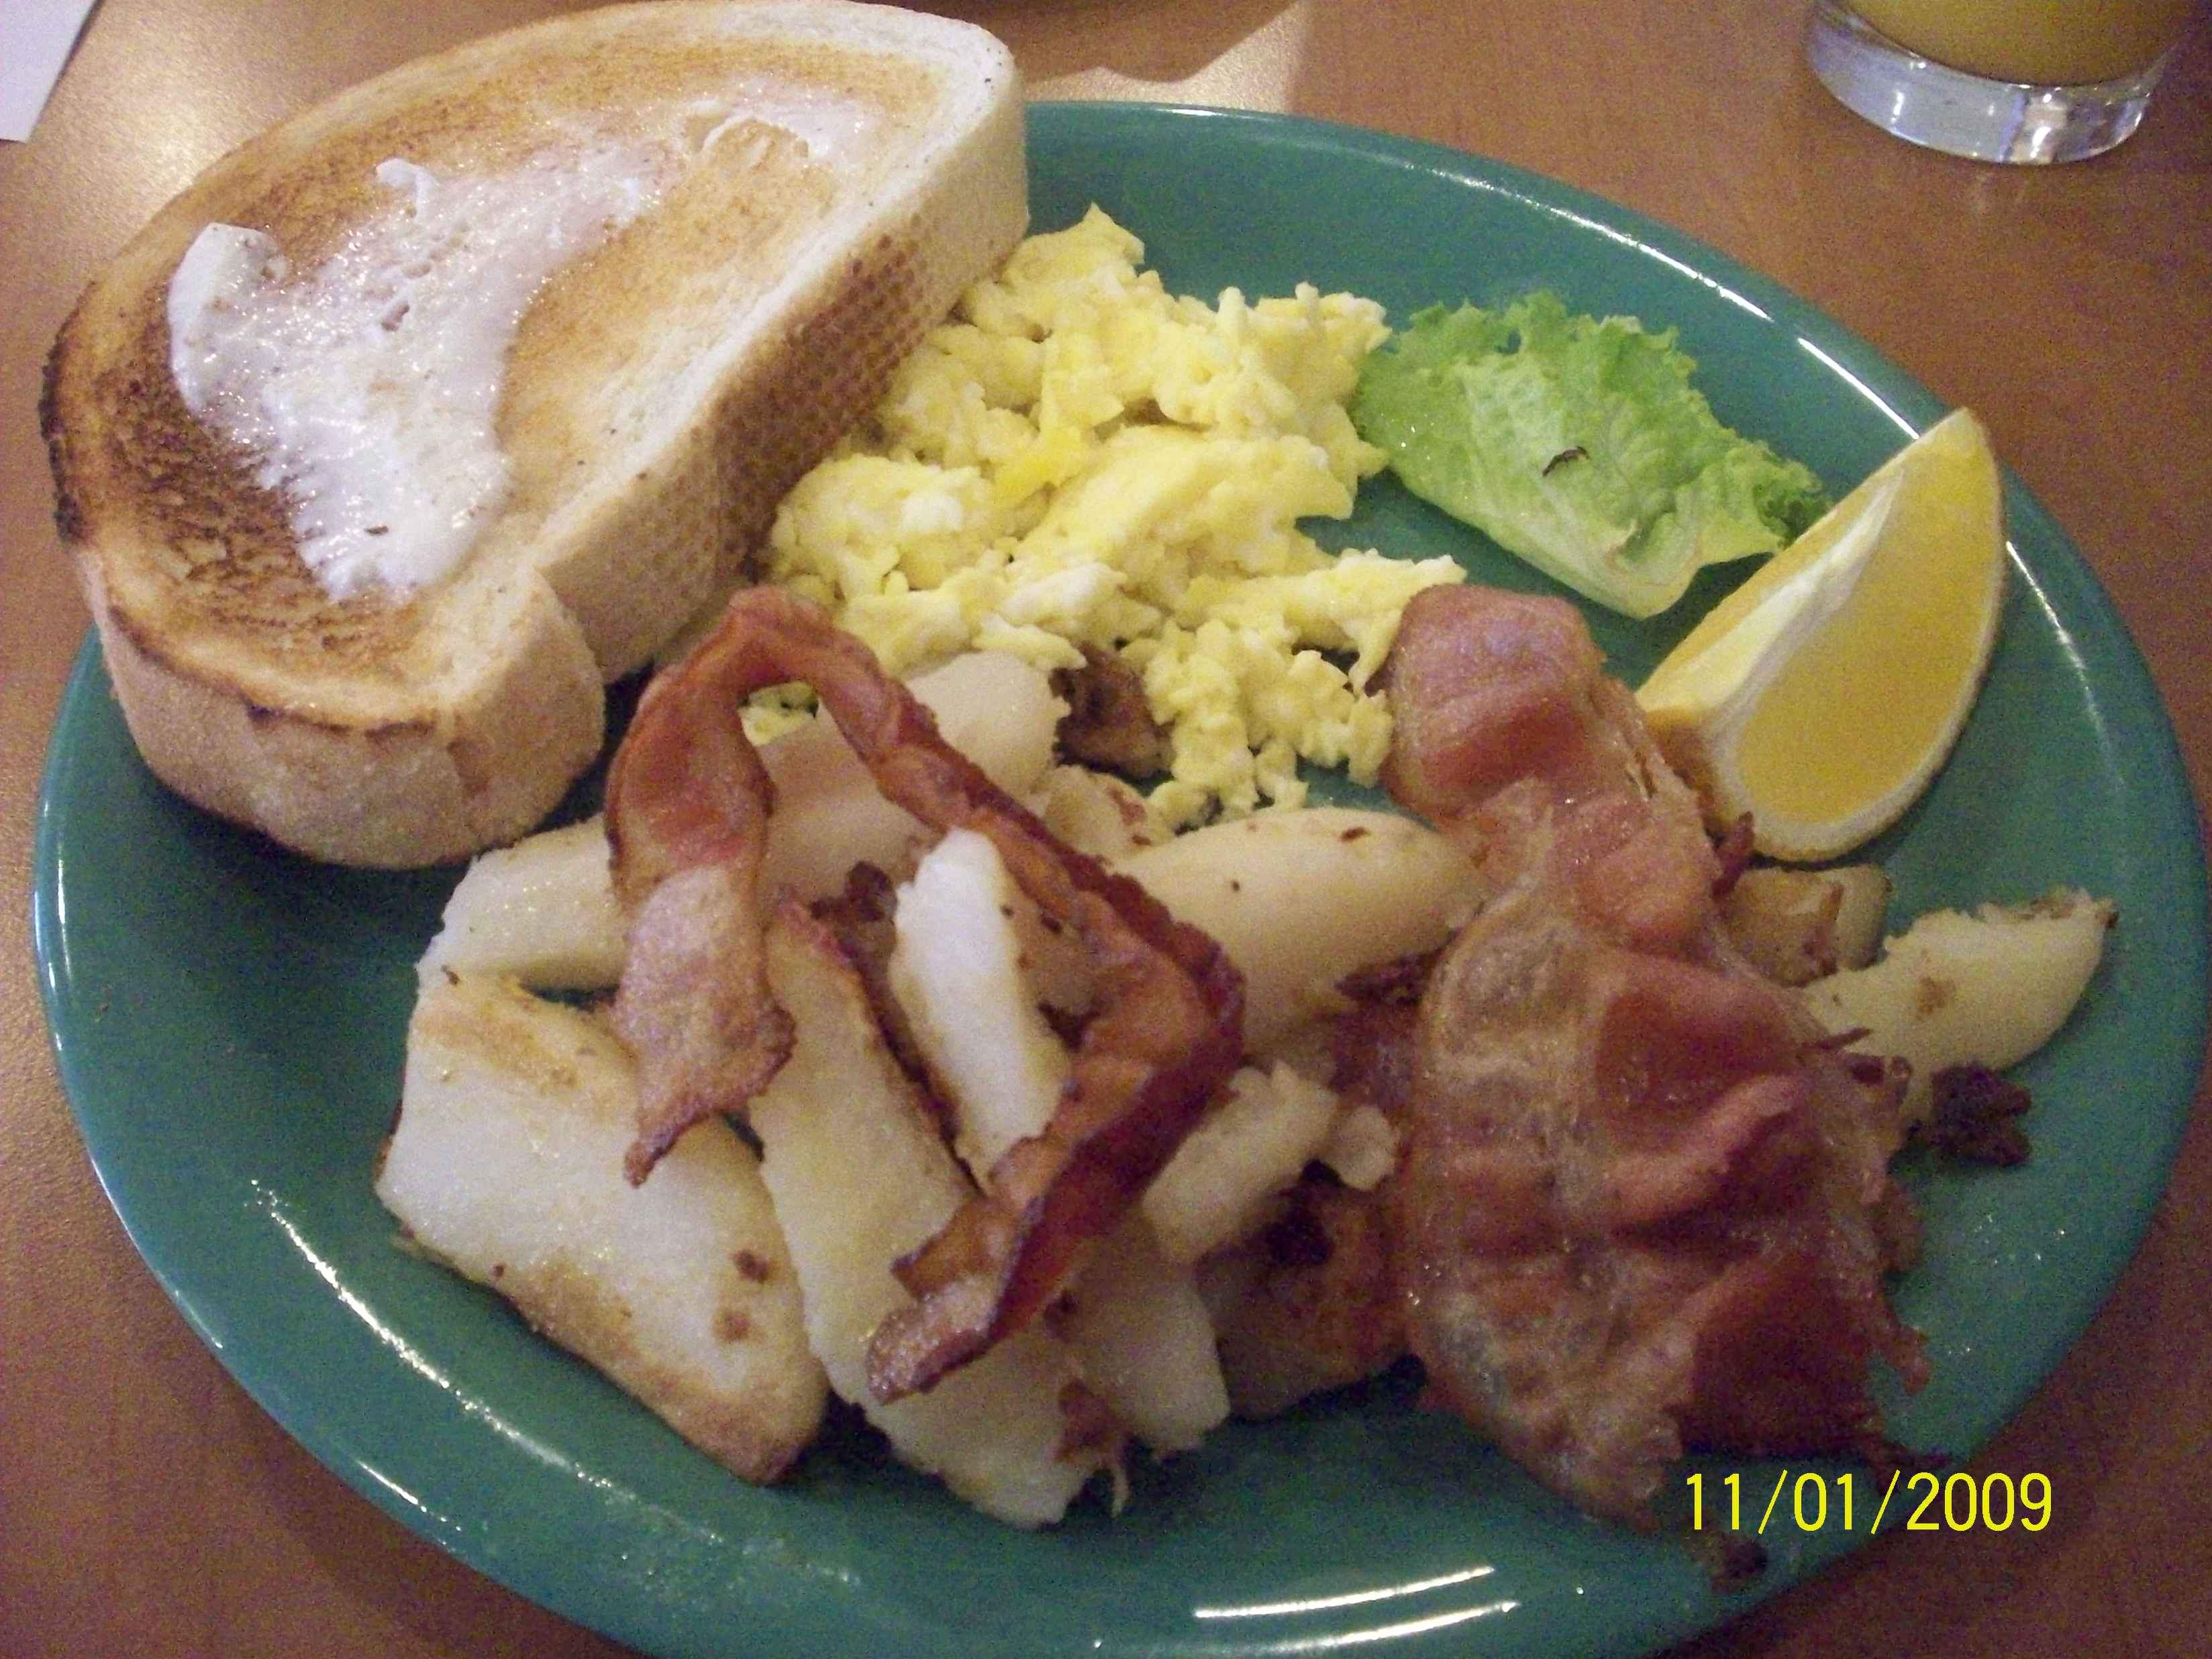 https://foodloader.net/cutie_2009-01-11_Small_Breakfast.jpg